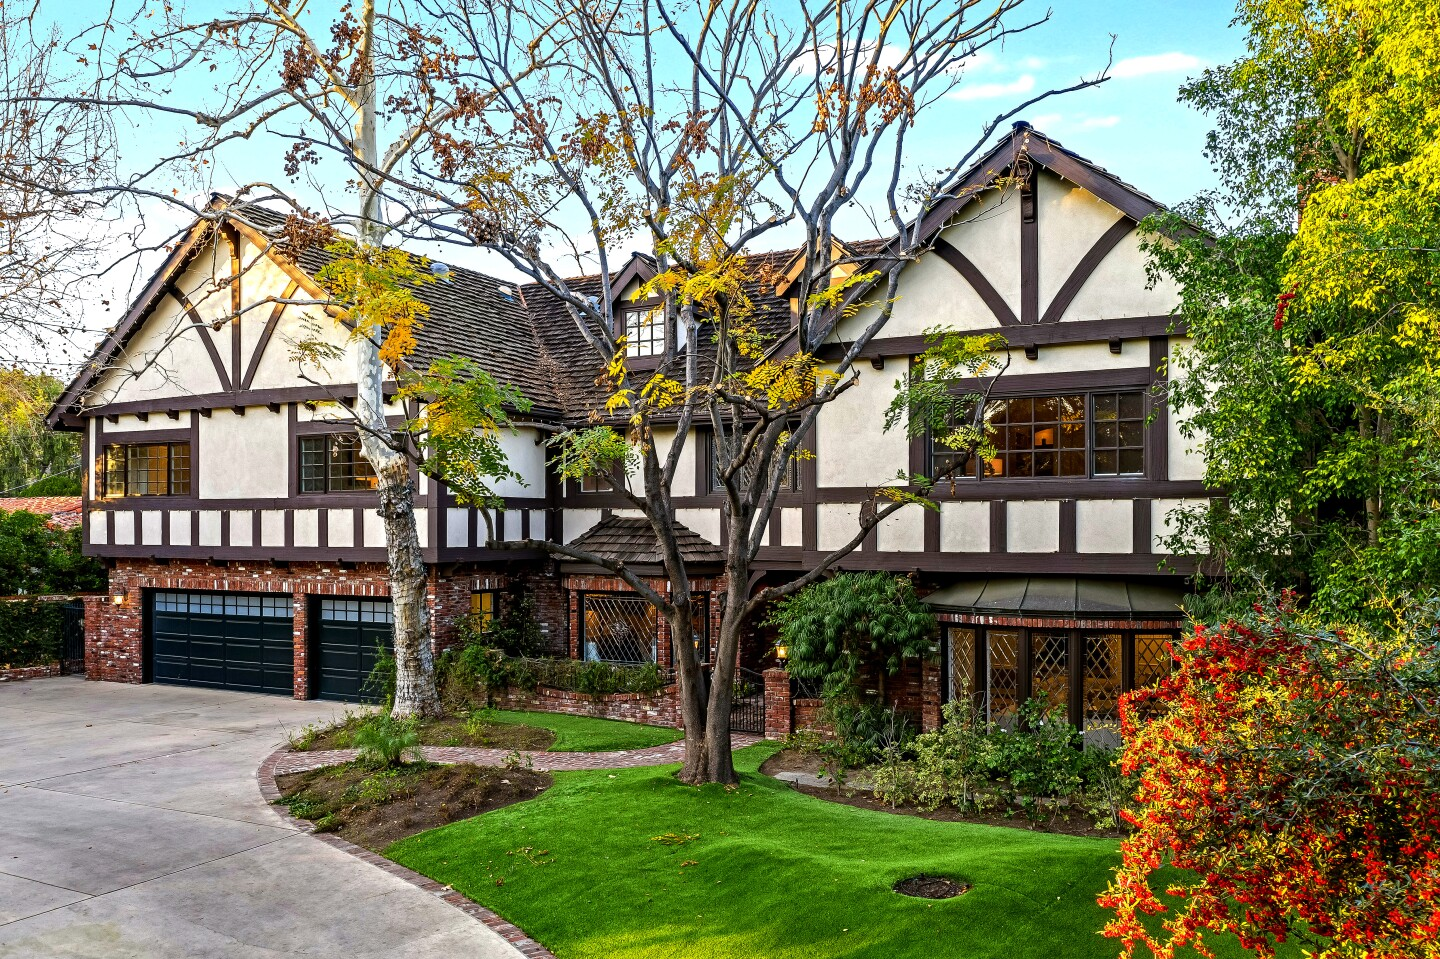 """Criminal Minds"" star Joe Mantegna had an offer in hand for this Toluca Lake home about a week after it hit the market. Mantegna's Tudor-style manor, which features handsome character details and a massive great room, sold for $4 million."